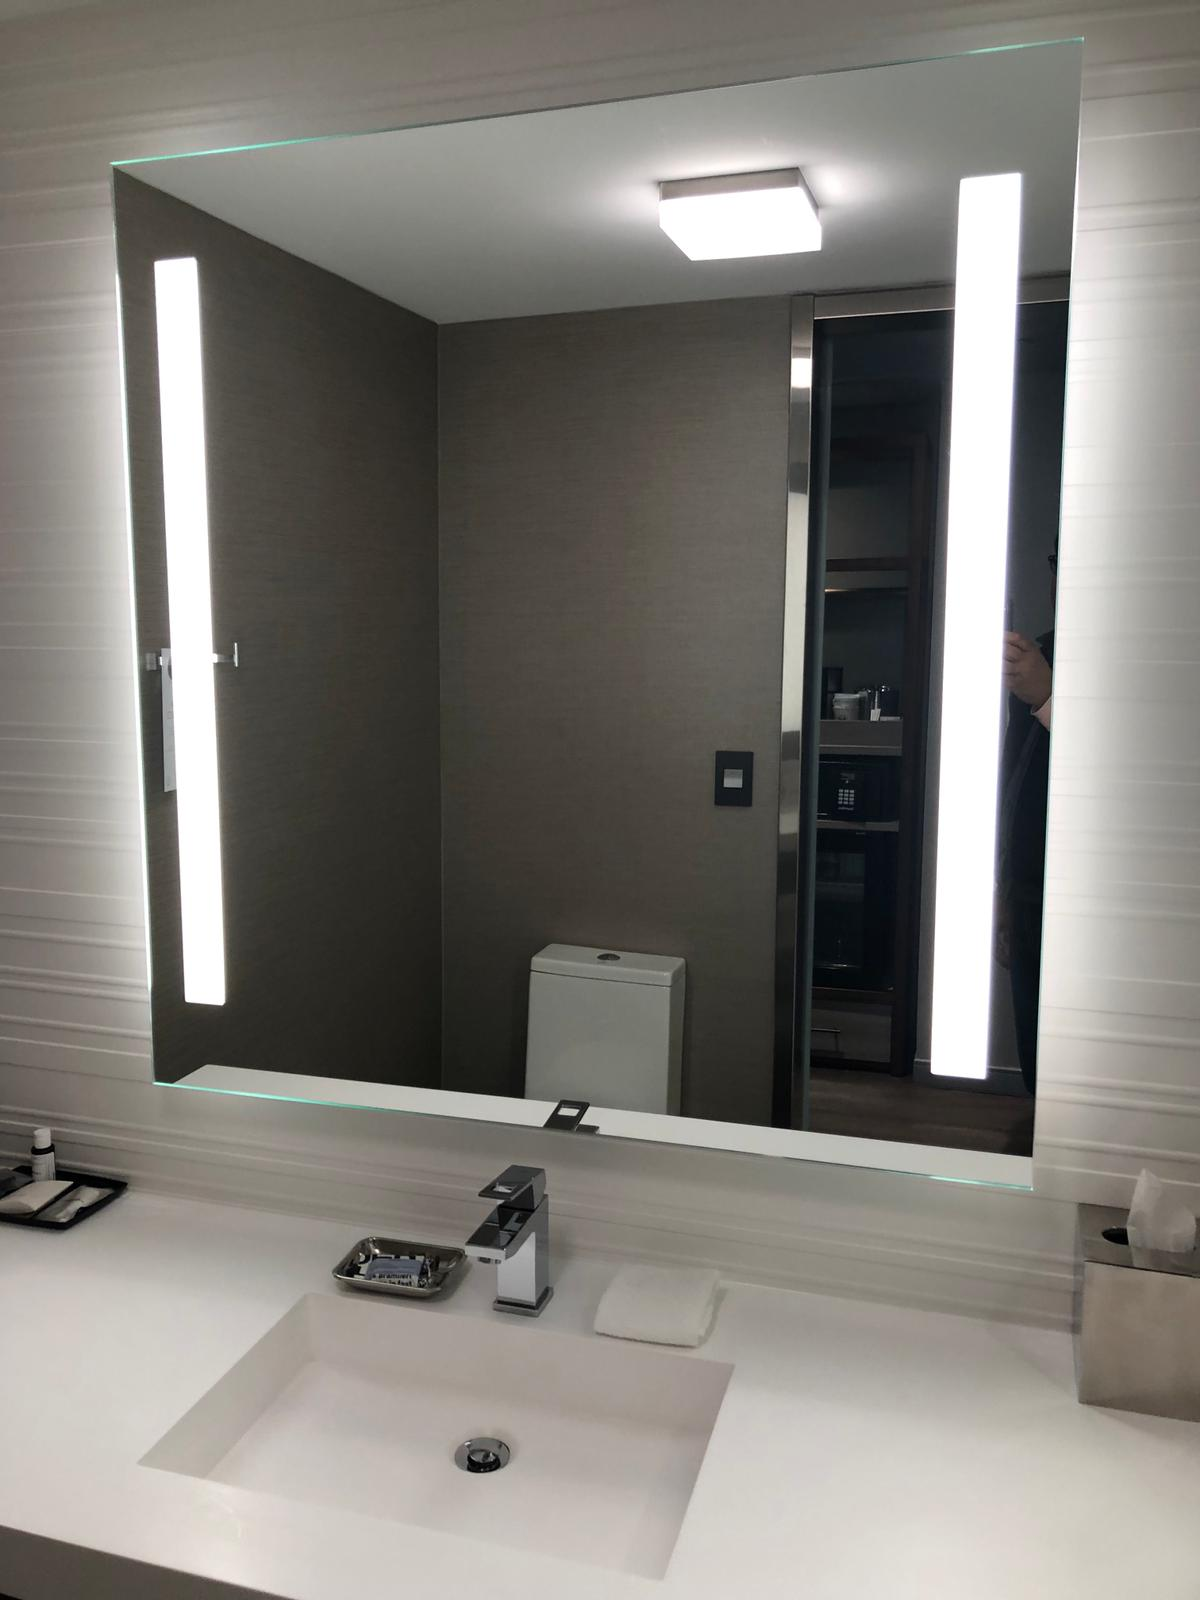 Condensation-Free Vanity Mirror With Left & Right Sandblasted Bands